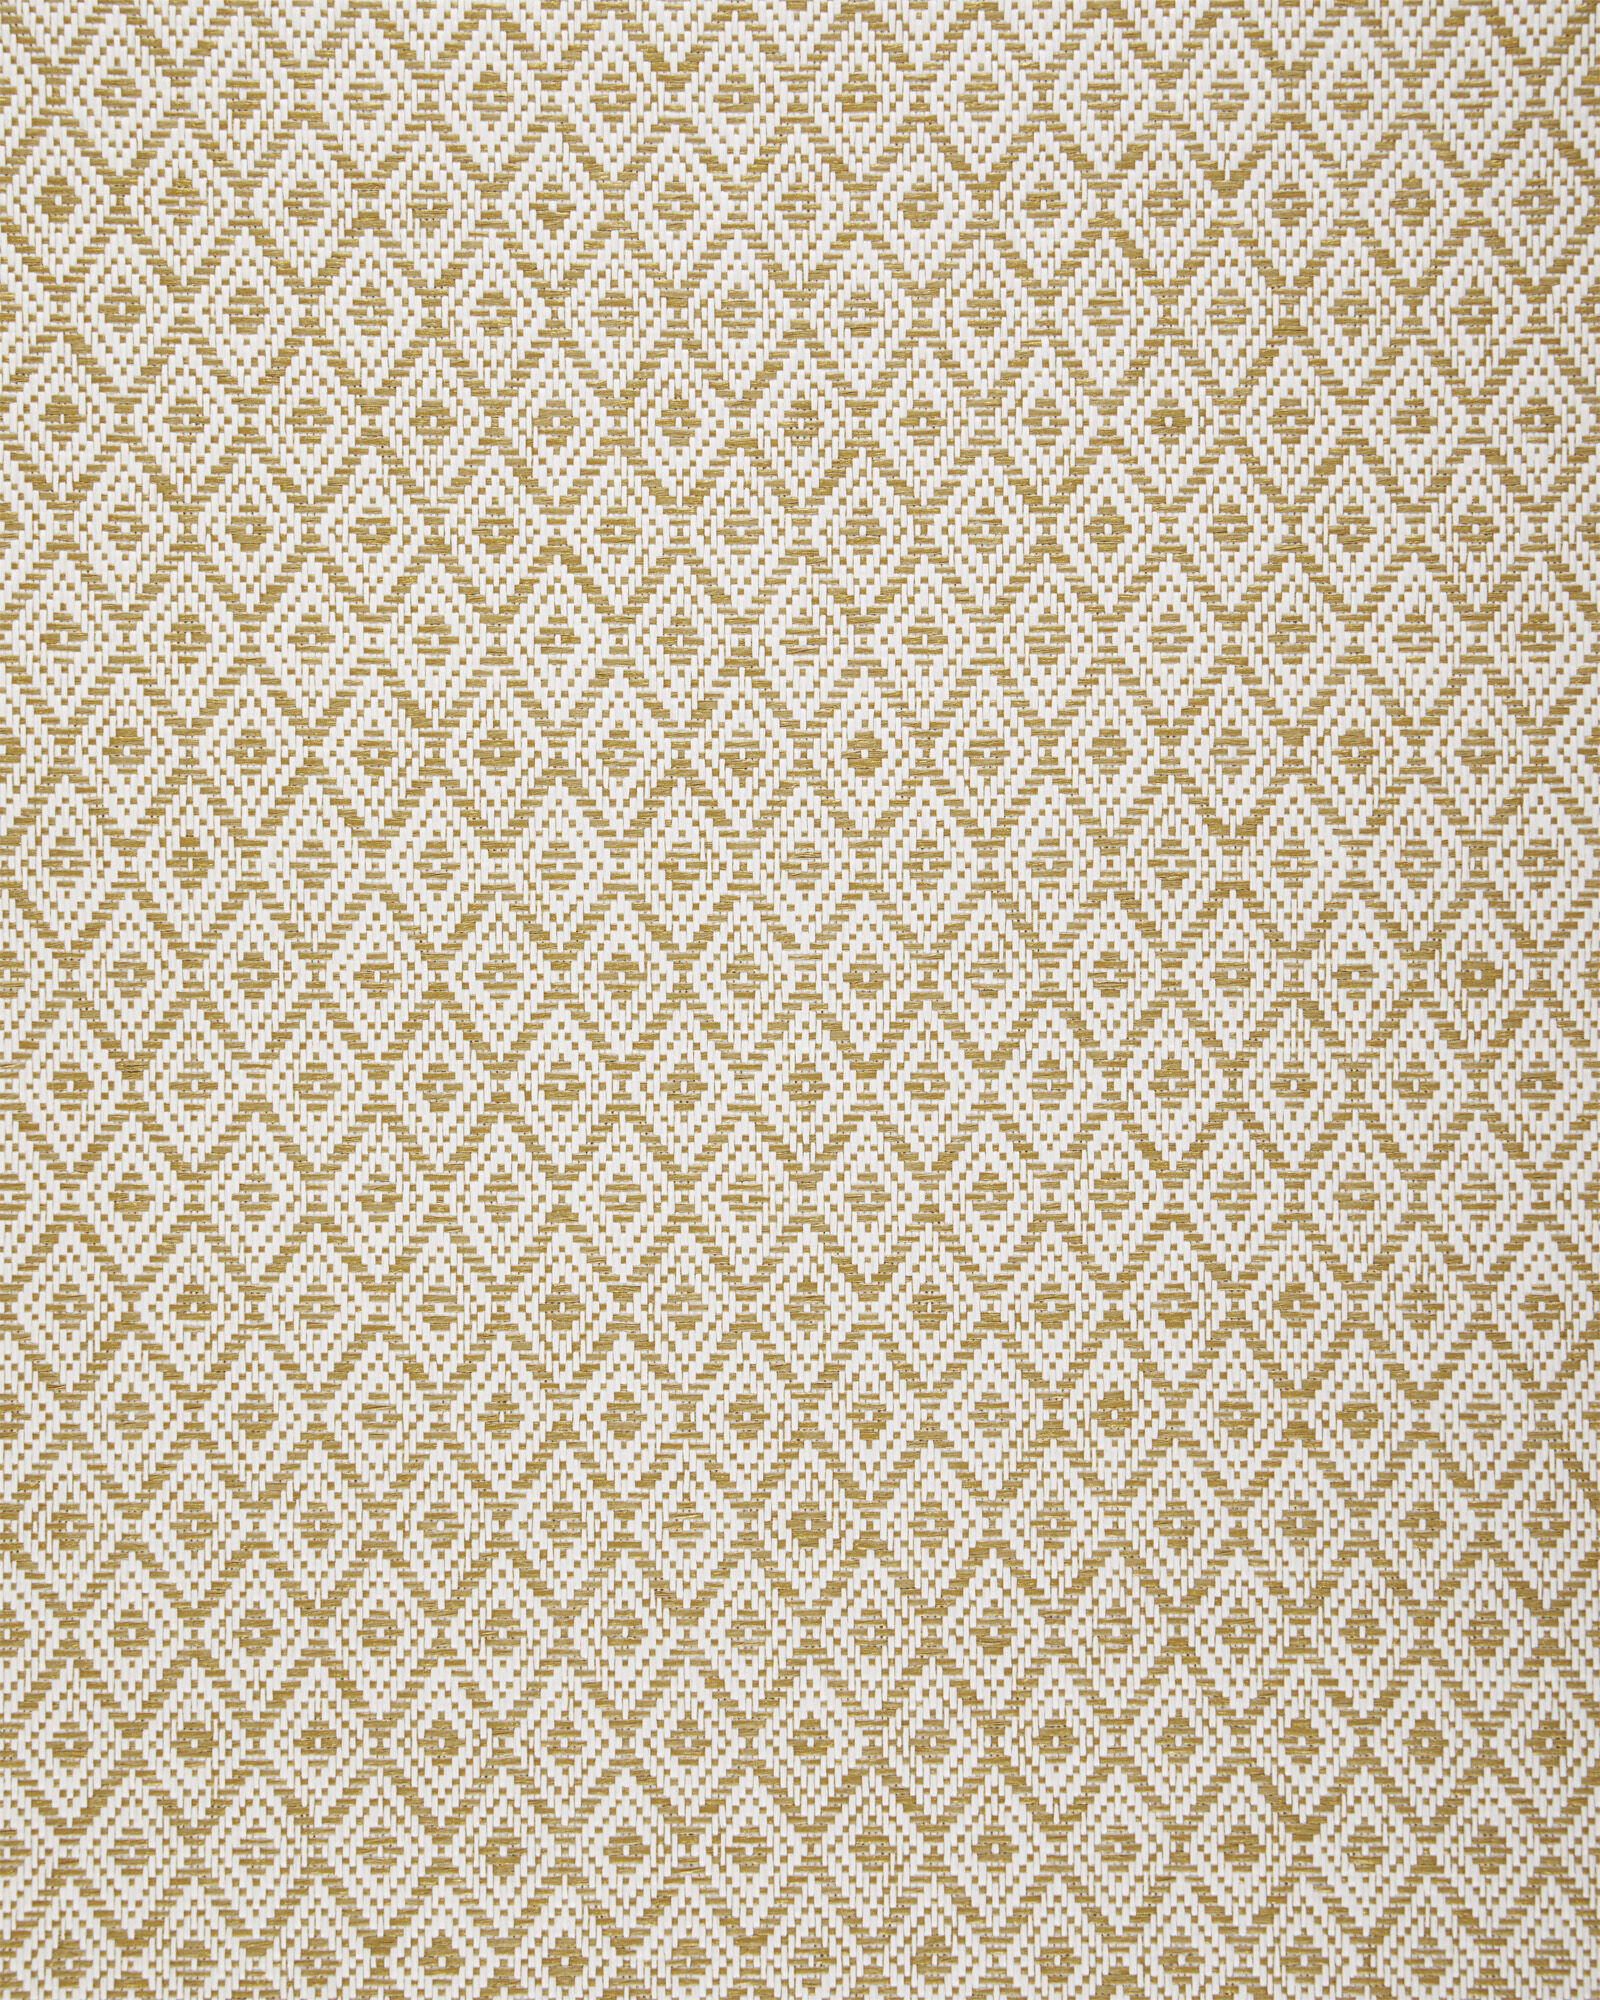 Martinique Wallpaper Swatch, Natural/White